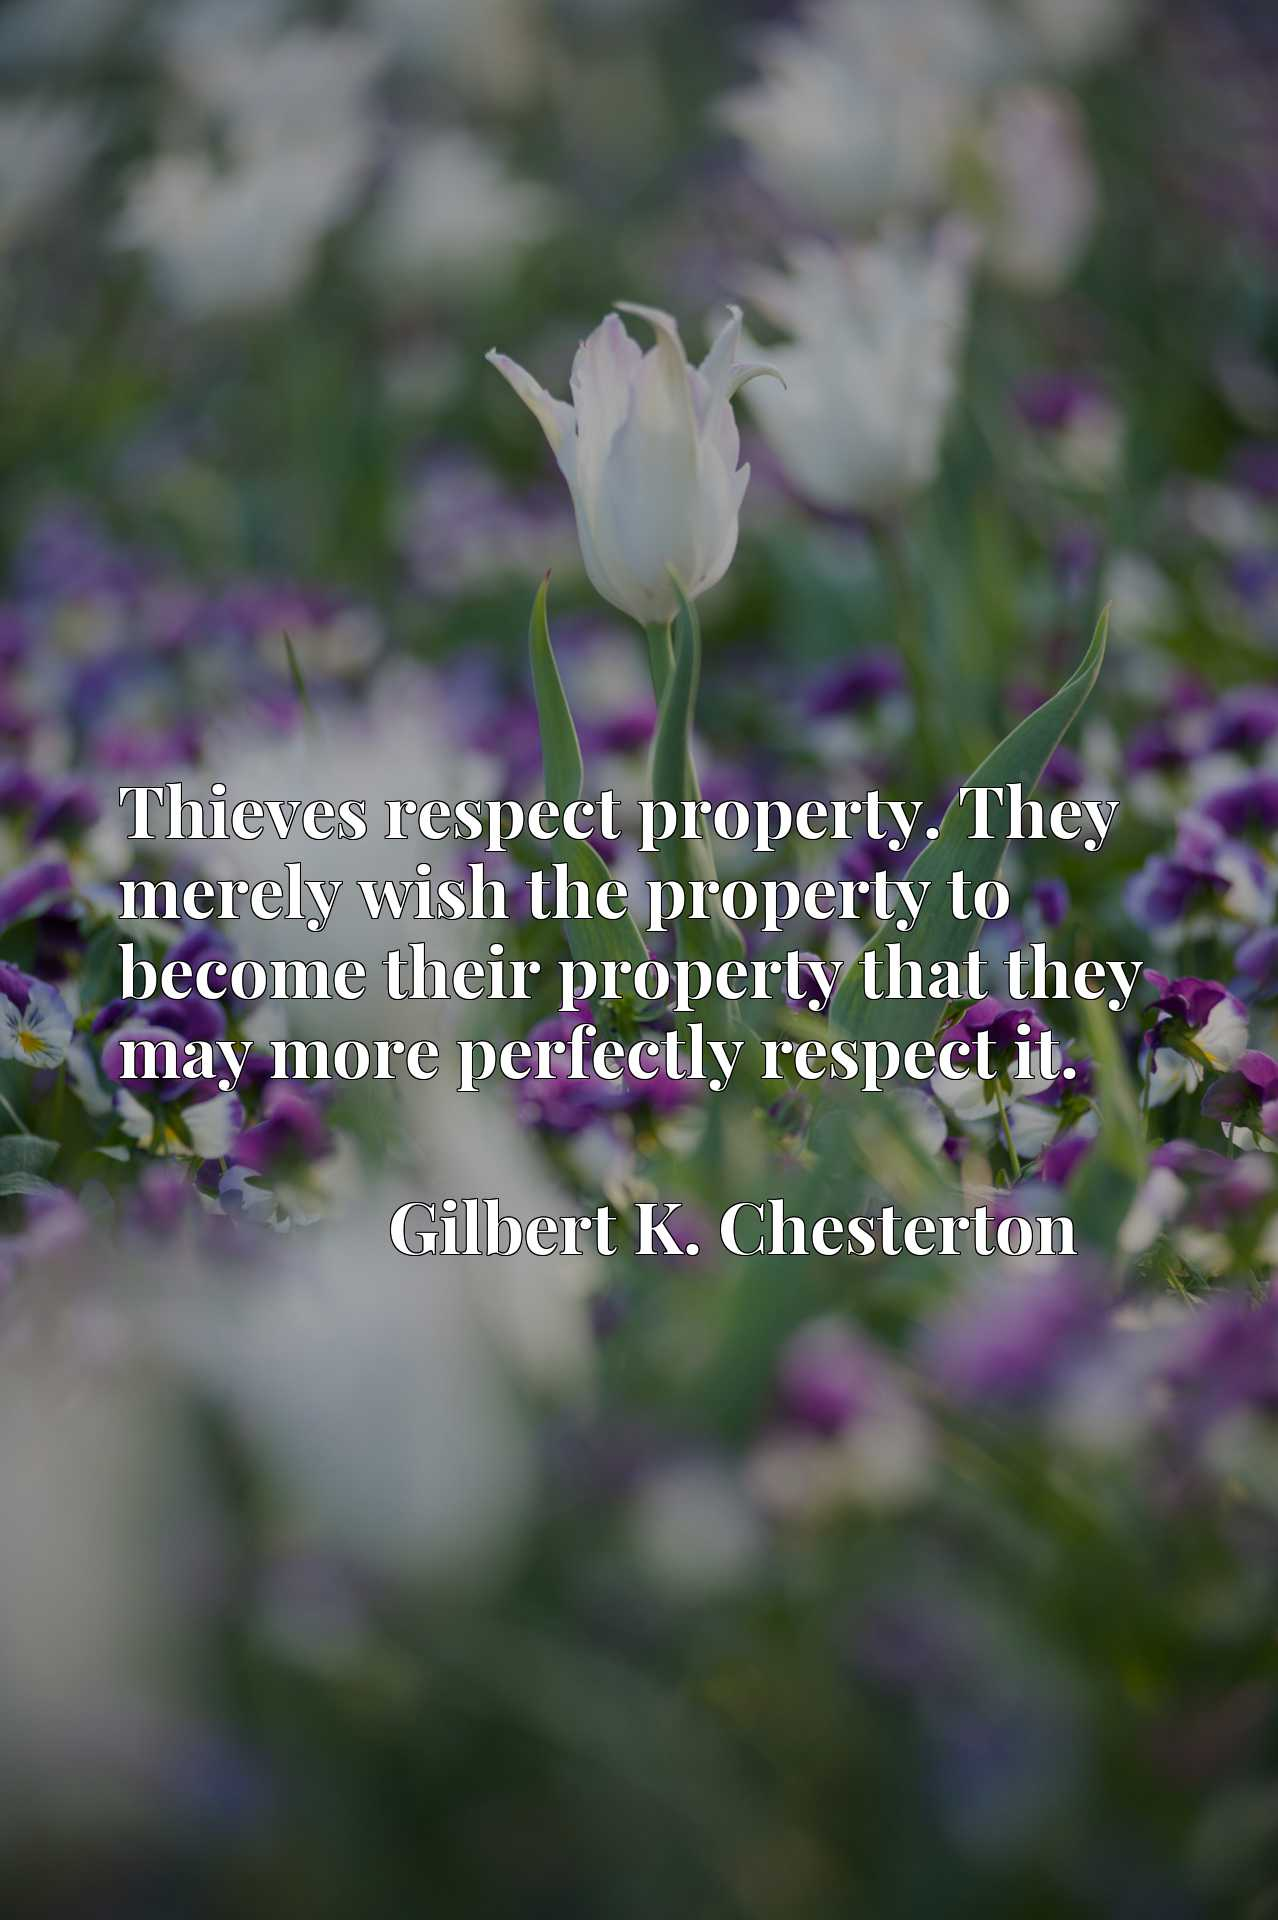 Thieves respect property. They merely wish the property to become their property that they may more perfectly respect it.